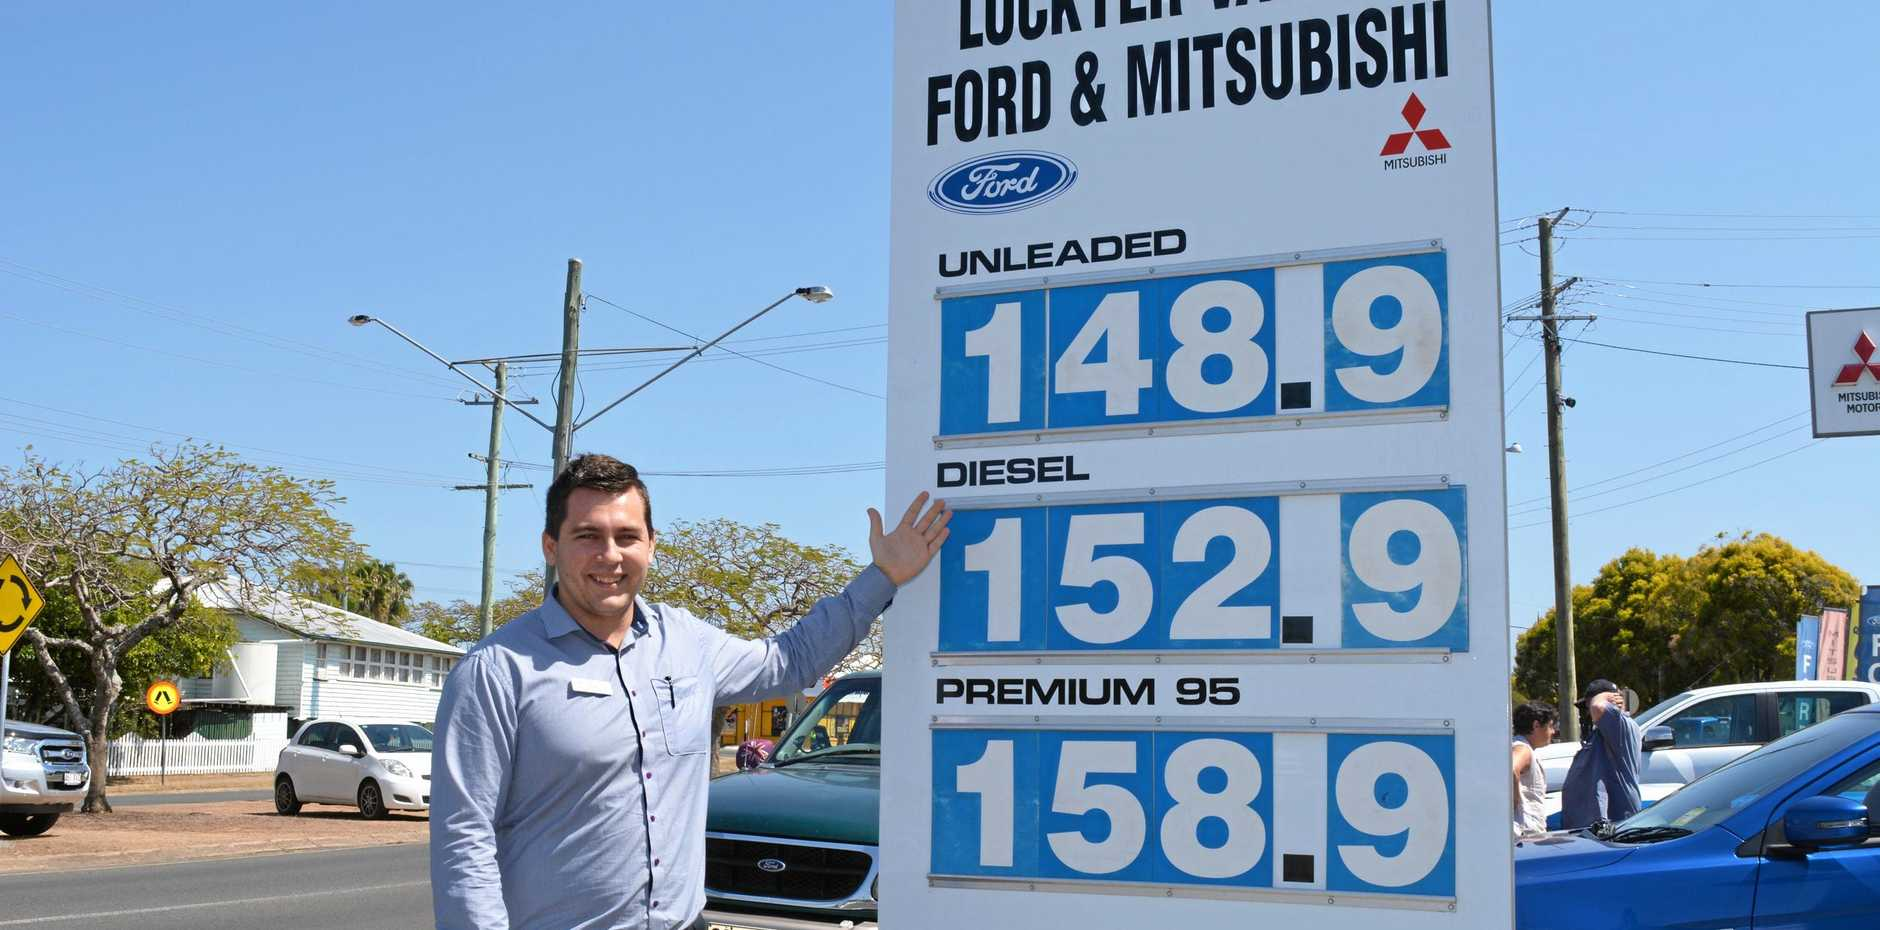 BEST BUY: Chris O'Brien makes sure he offers the cheapest fuel in town.